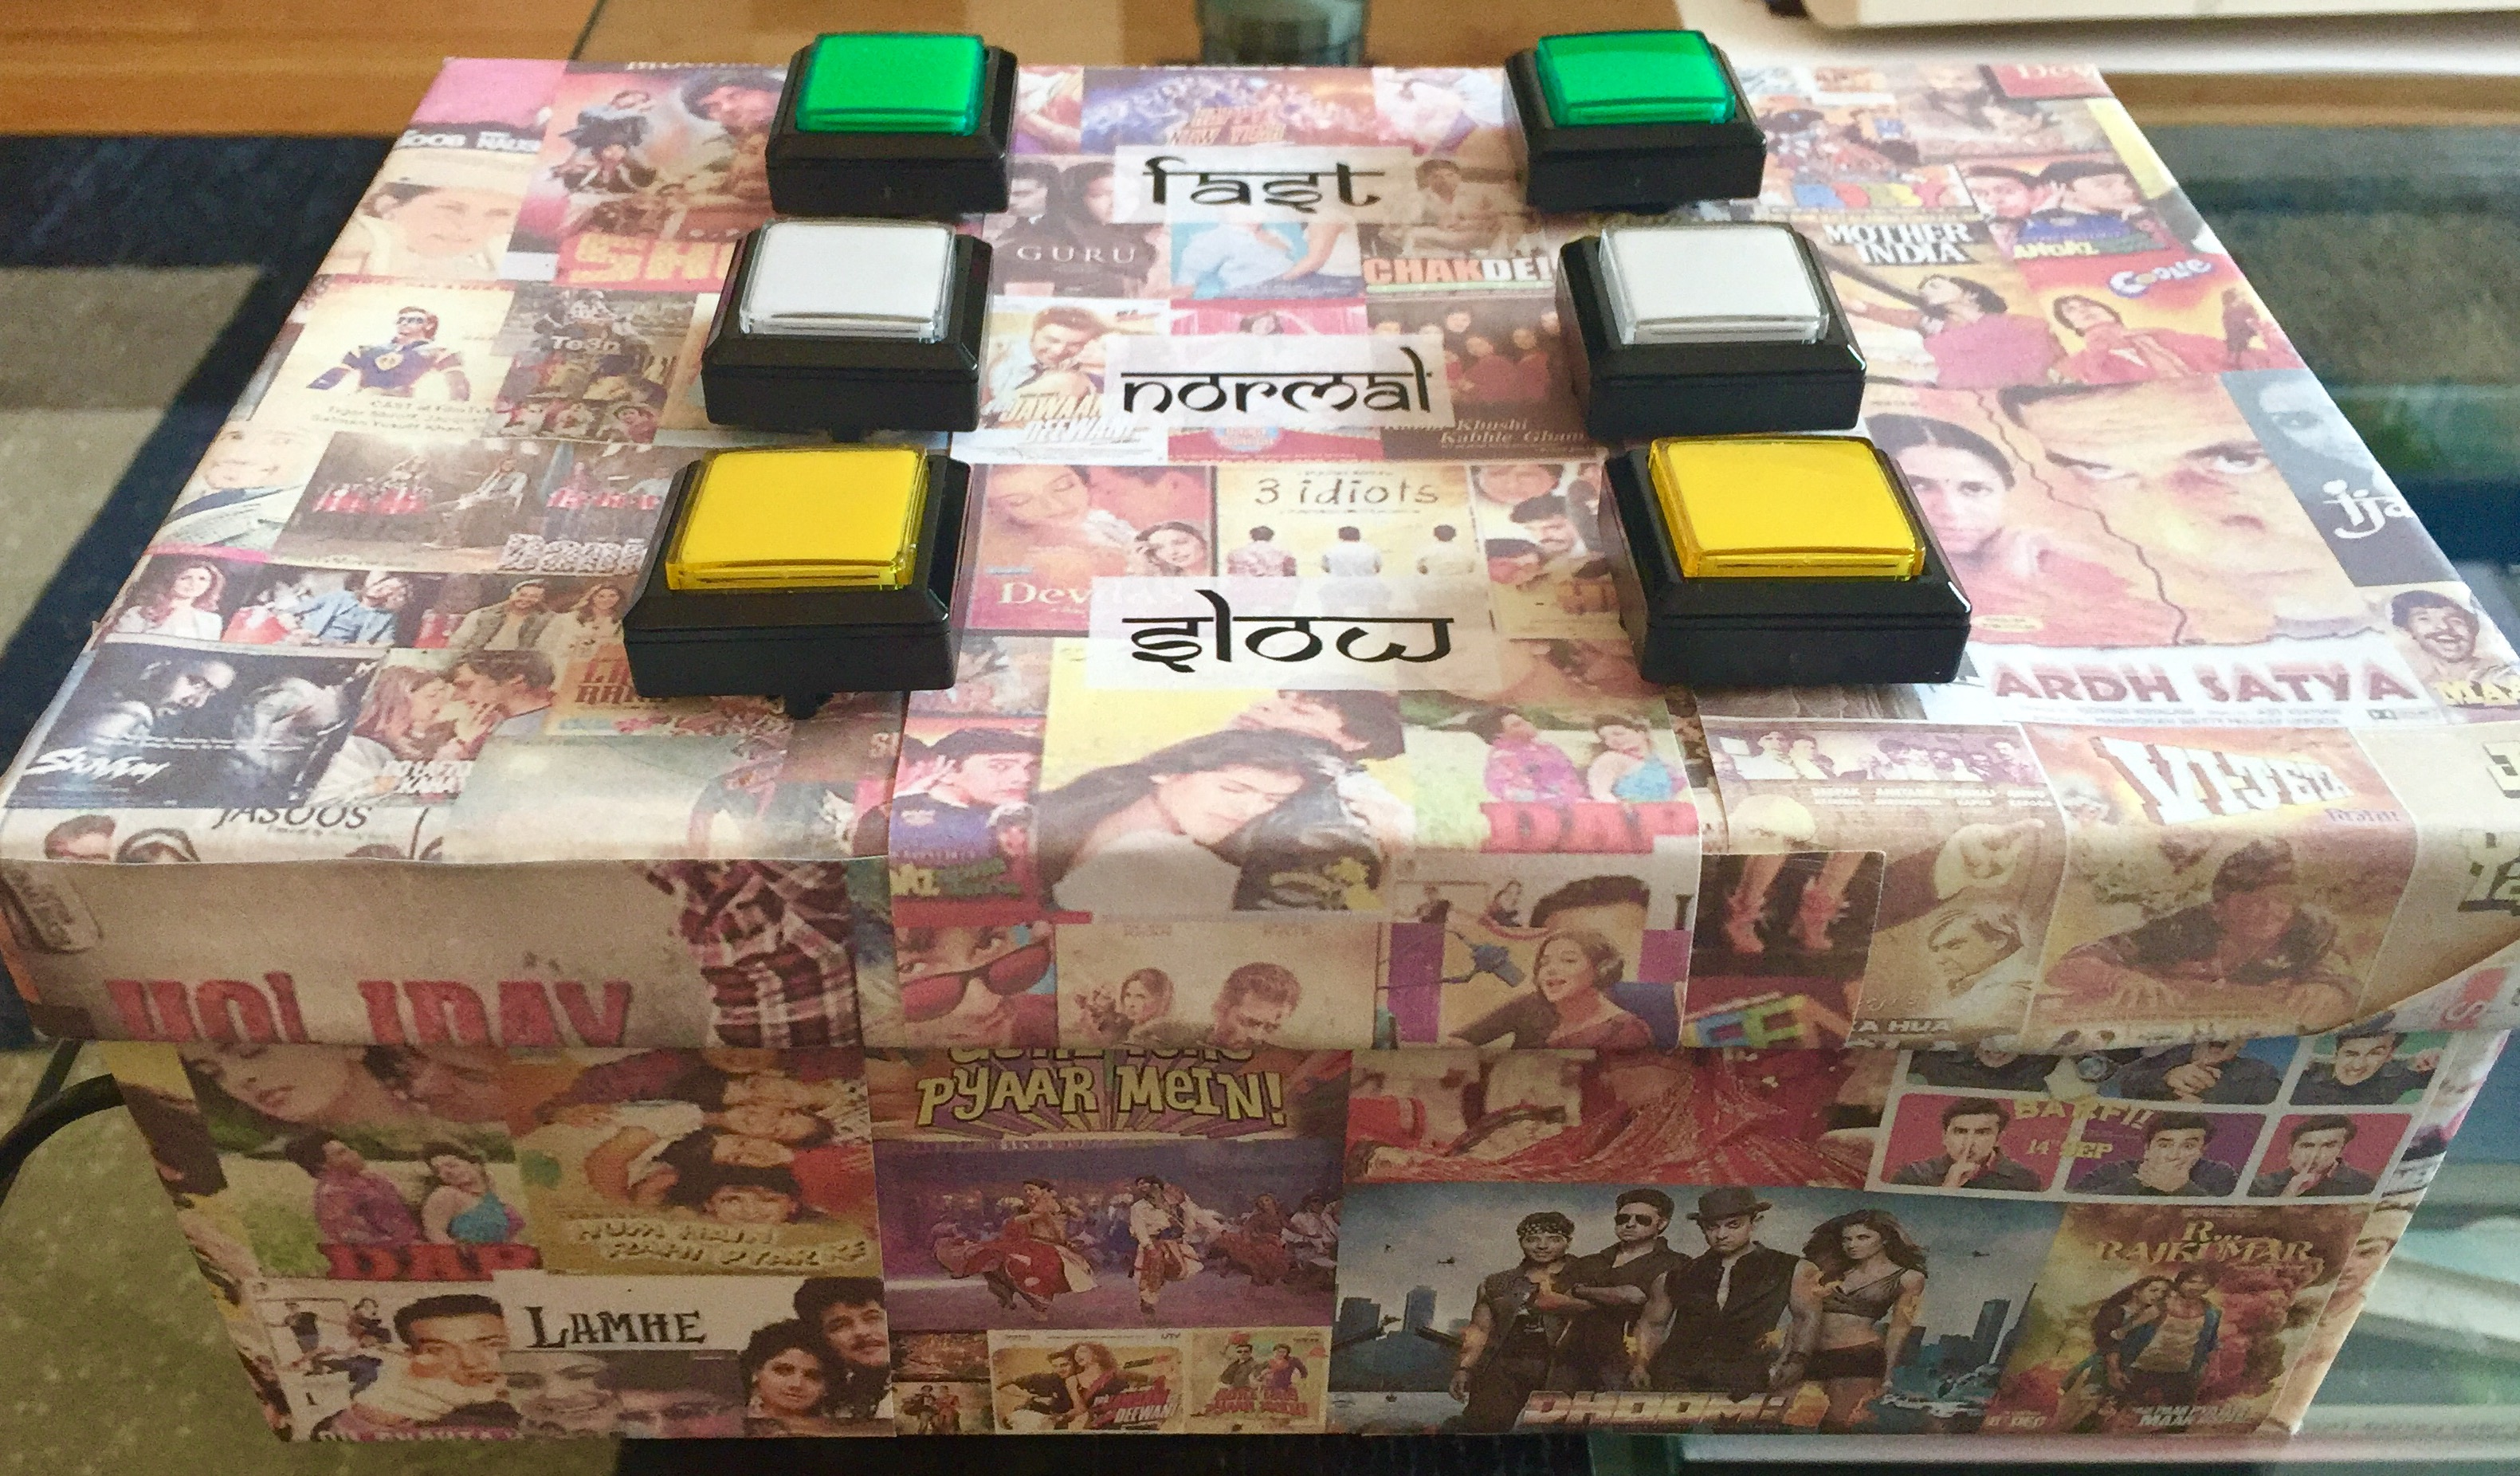 THE BHANGRA BOX